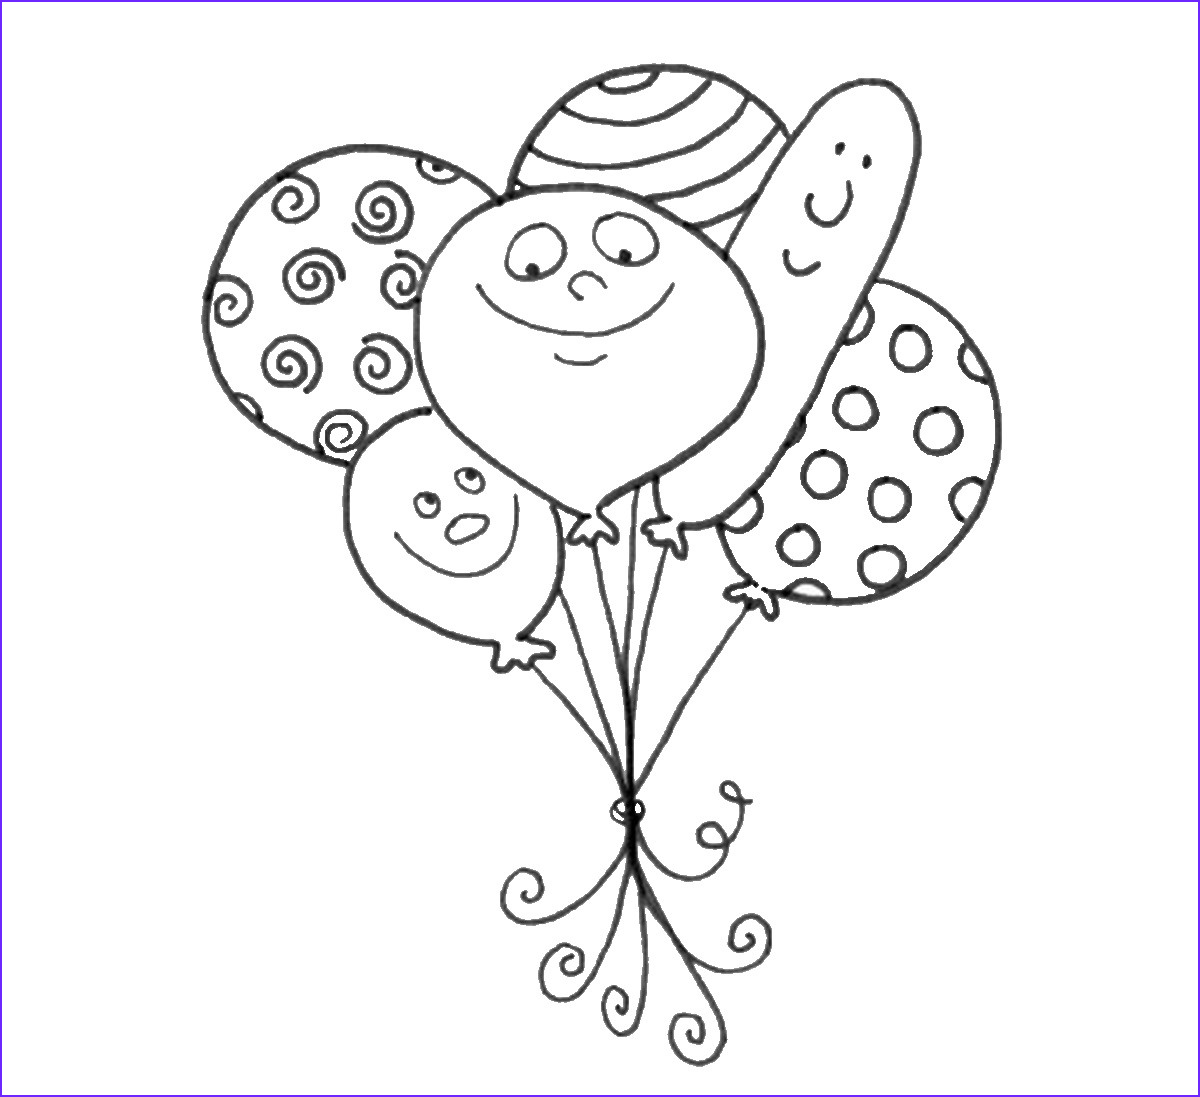 Balloon Coloring Pages Cool Image Balloons Coloring Pages